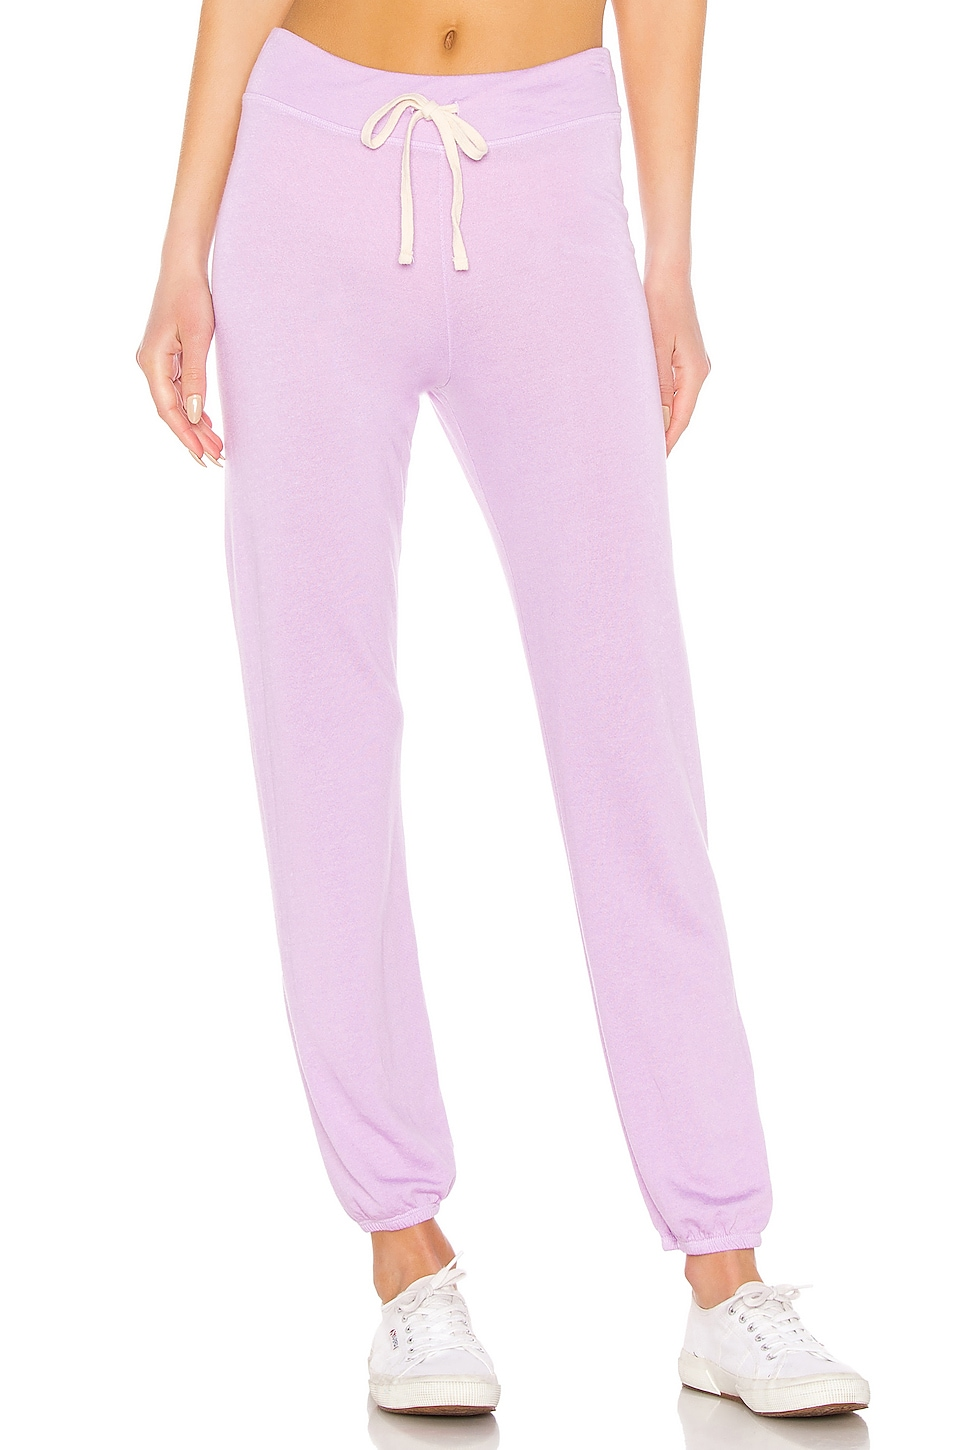 SUNDRY Classic Sweatpants in Lavender